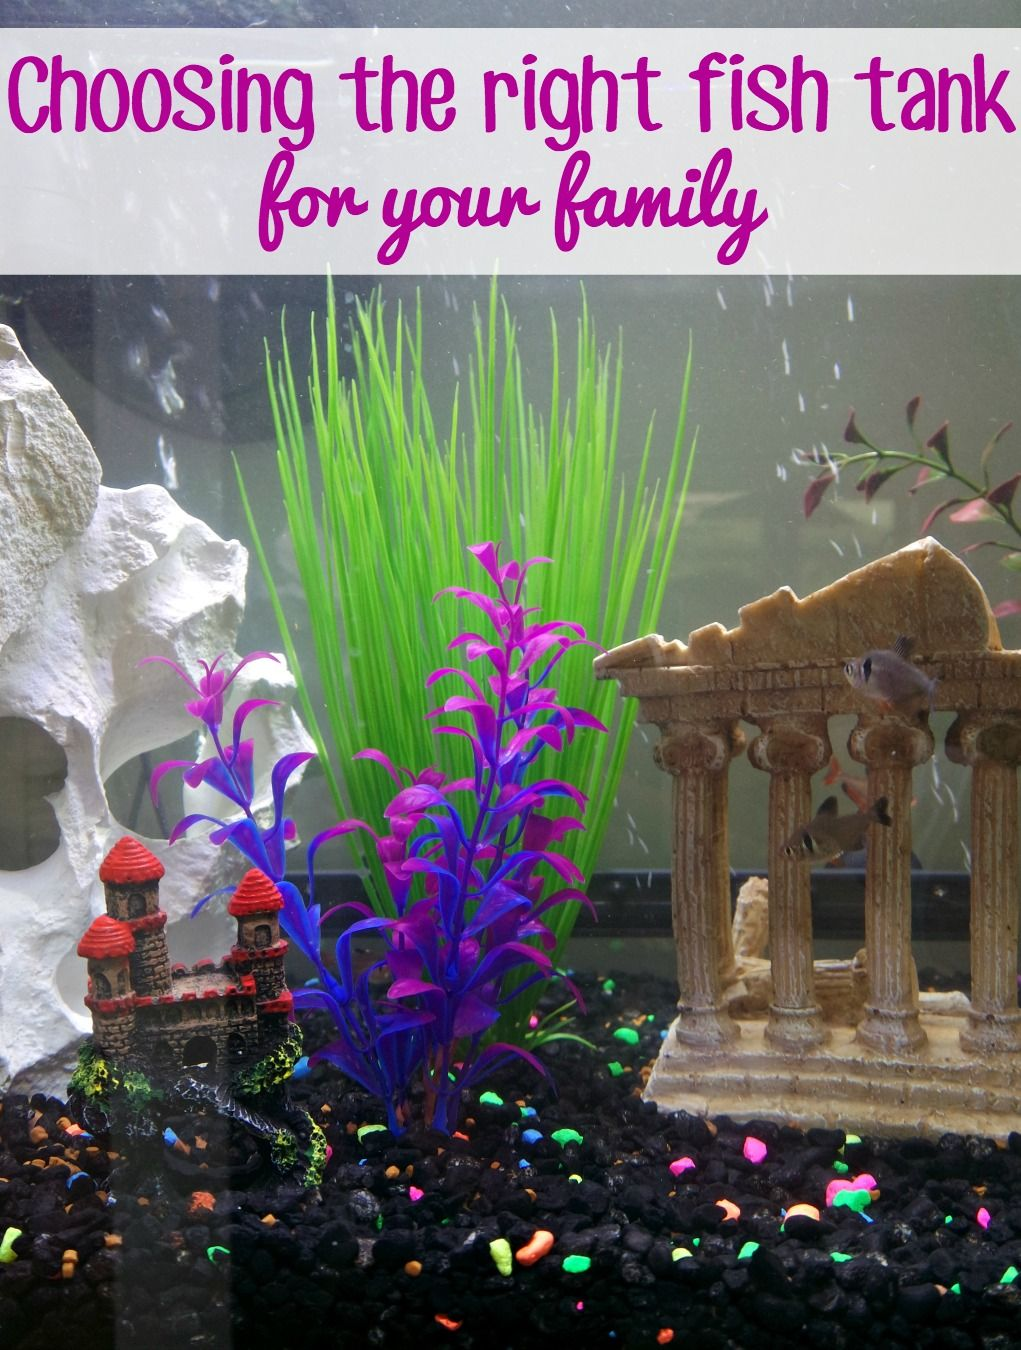 Choosing the right fish tank for your family Fish tank